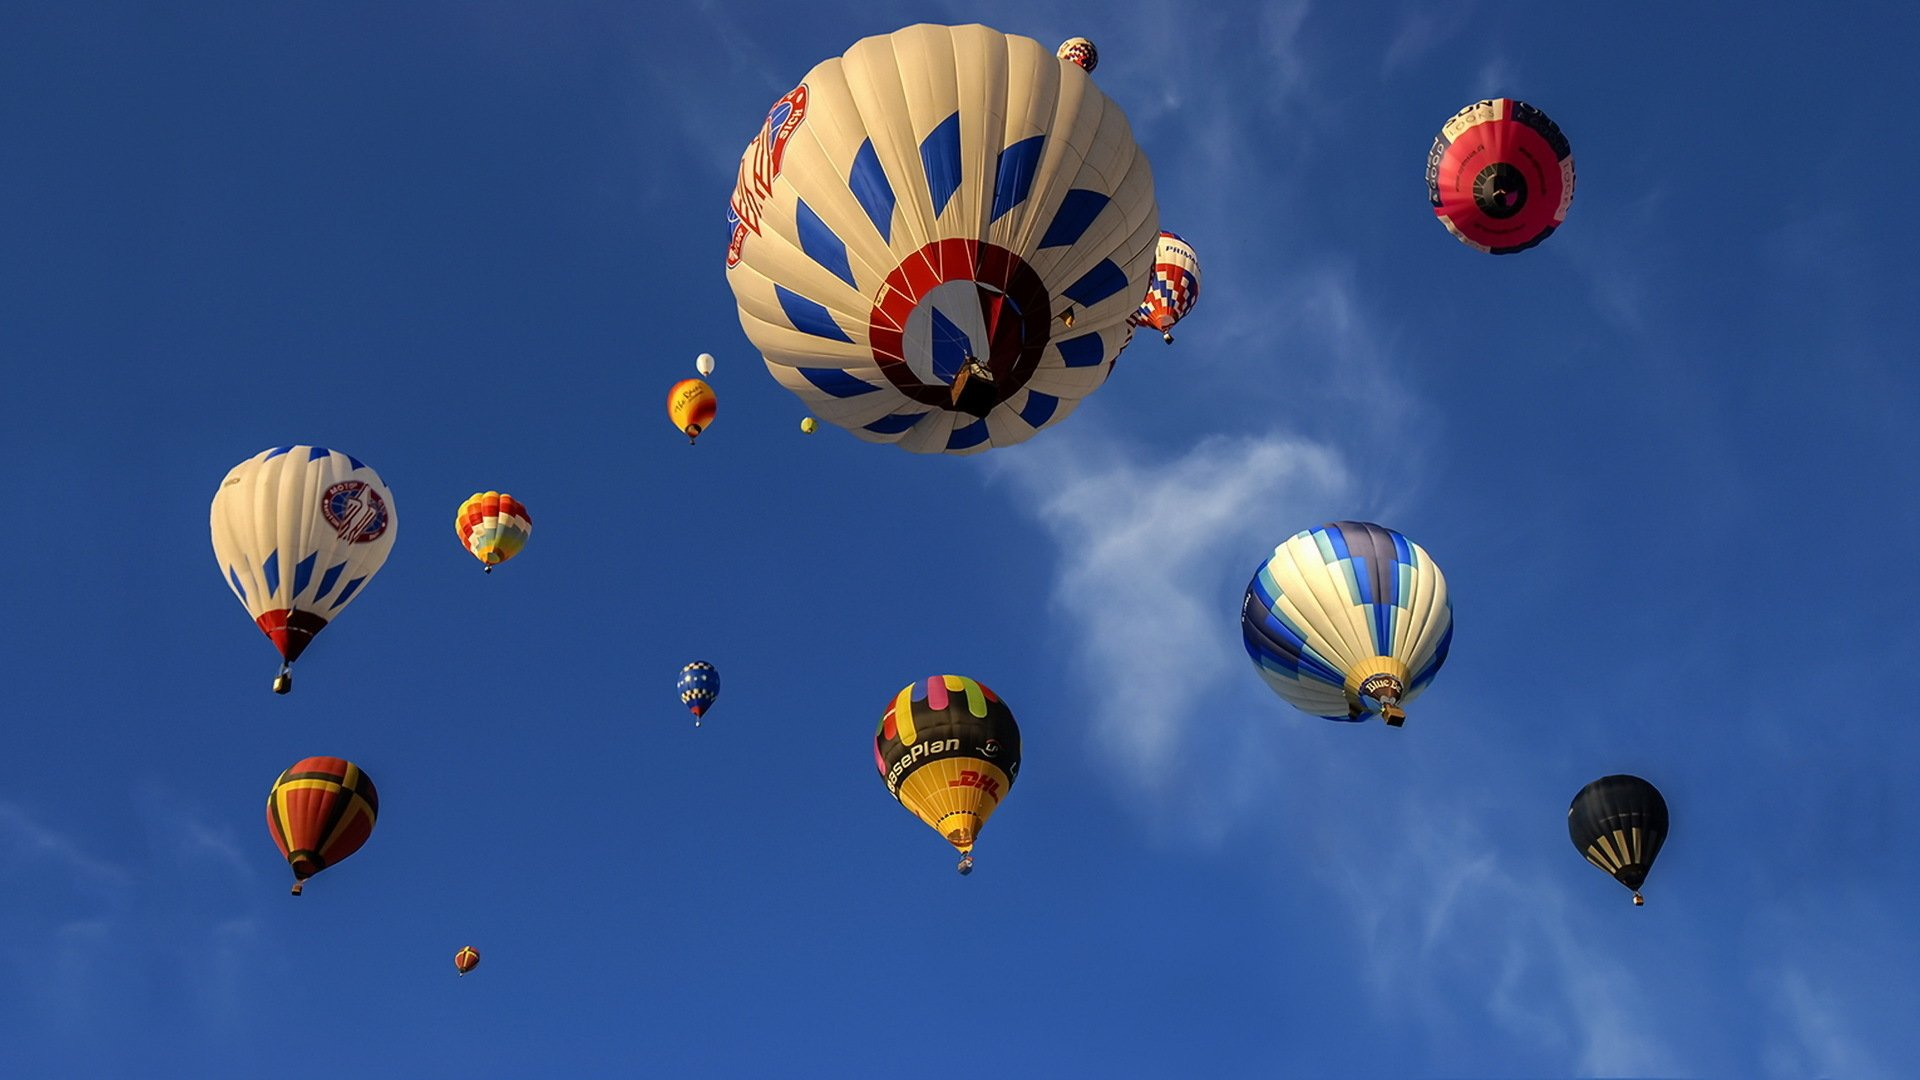 Vehicles - Hot Air Balloon  Sky Wallpaper